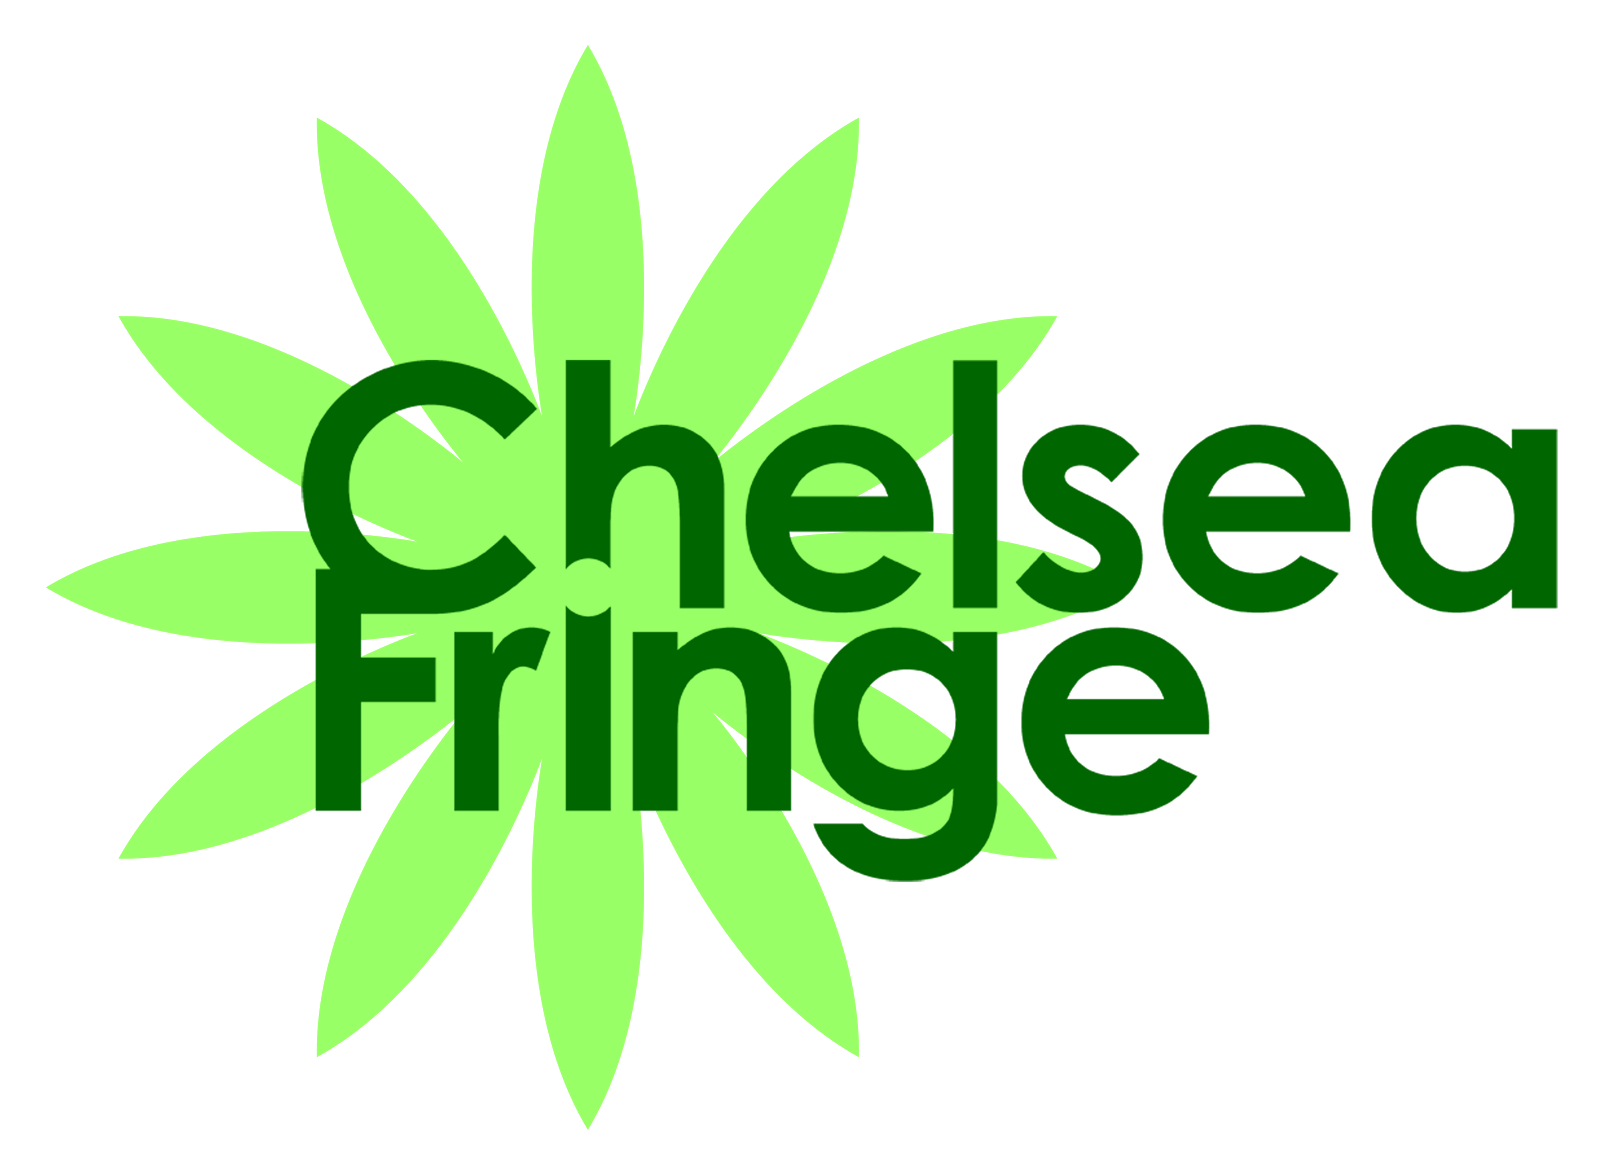 PROUD TO BE PART OF CHELSEA FRINGE 2015